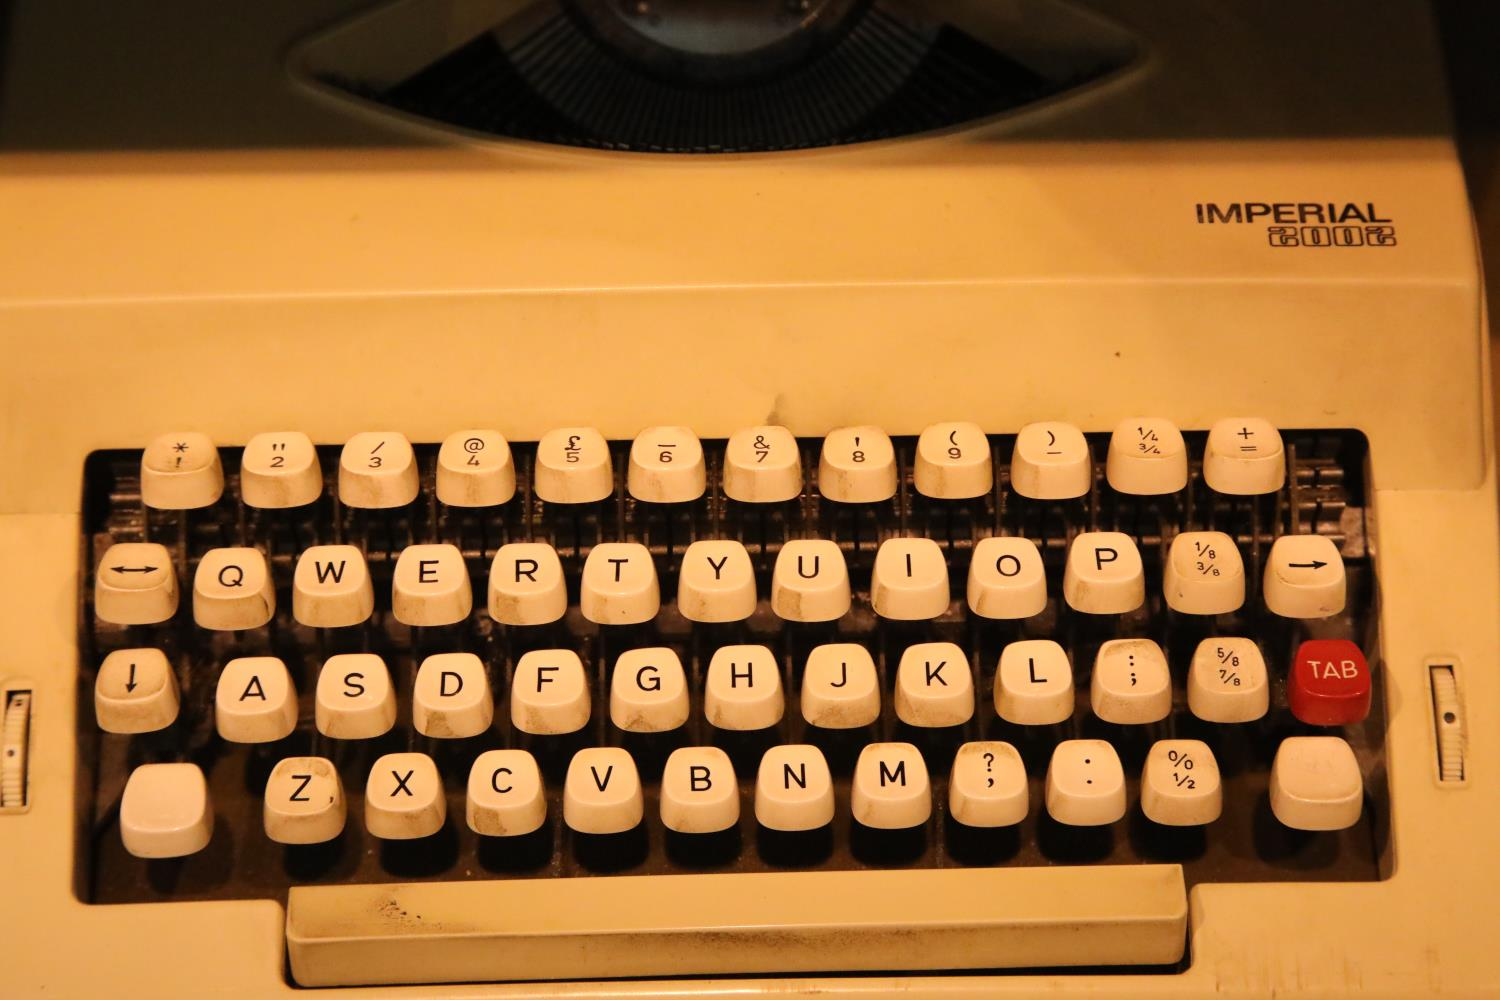 Imperial 2002 mechanical typewriter. P&P Group 3 (£25+VAT for the first lot and £5+VAT for